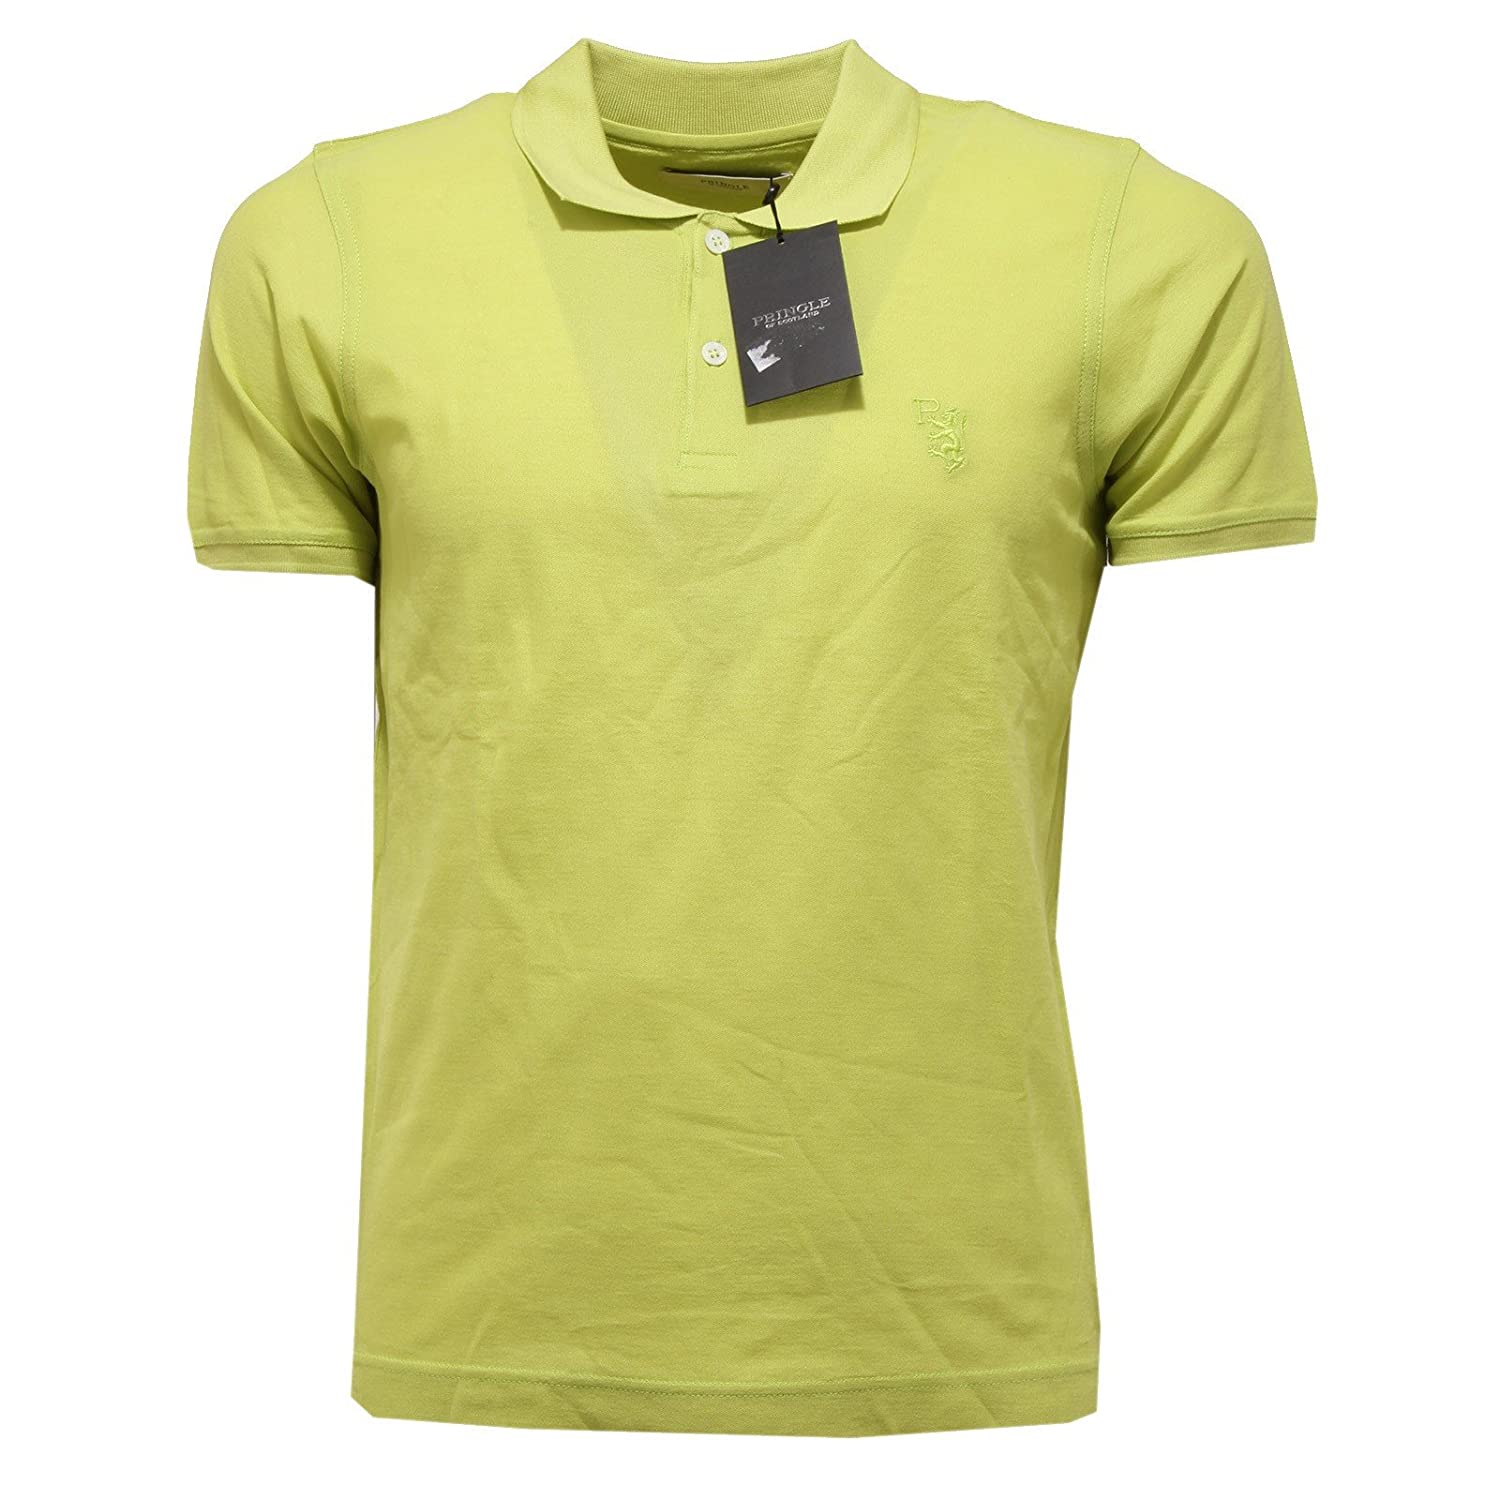 2217Q polo PRINGLE verde maglia manica corta uomo t-shirt men [S ...